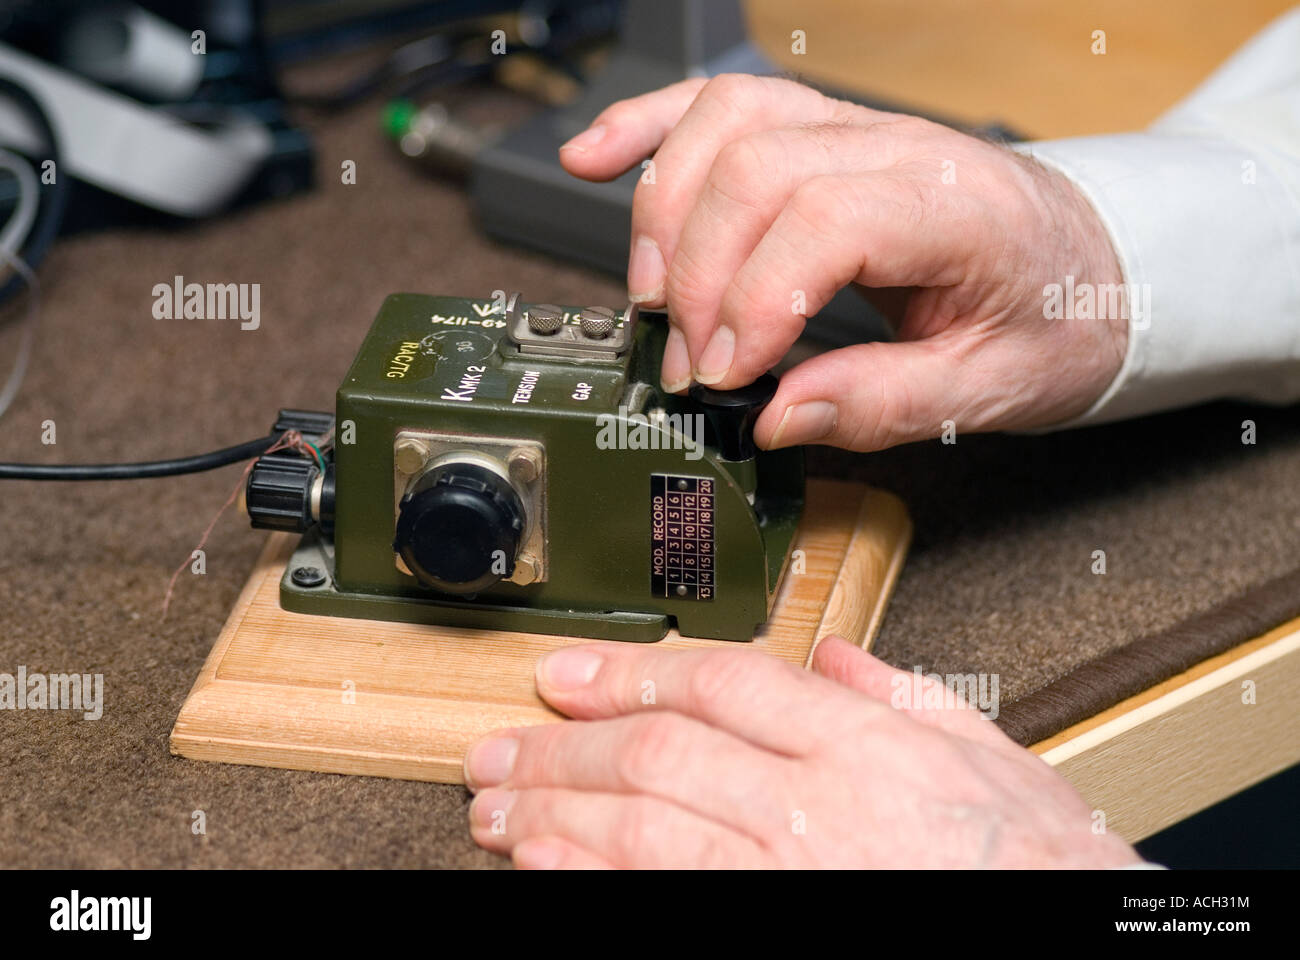 Blind man indulging his hobby for amateur radio and using morse code device, London, UK. - Stock Image